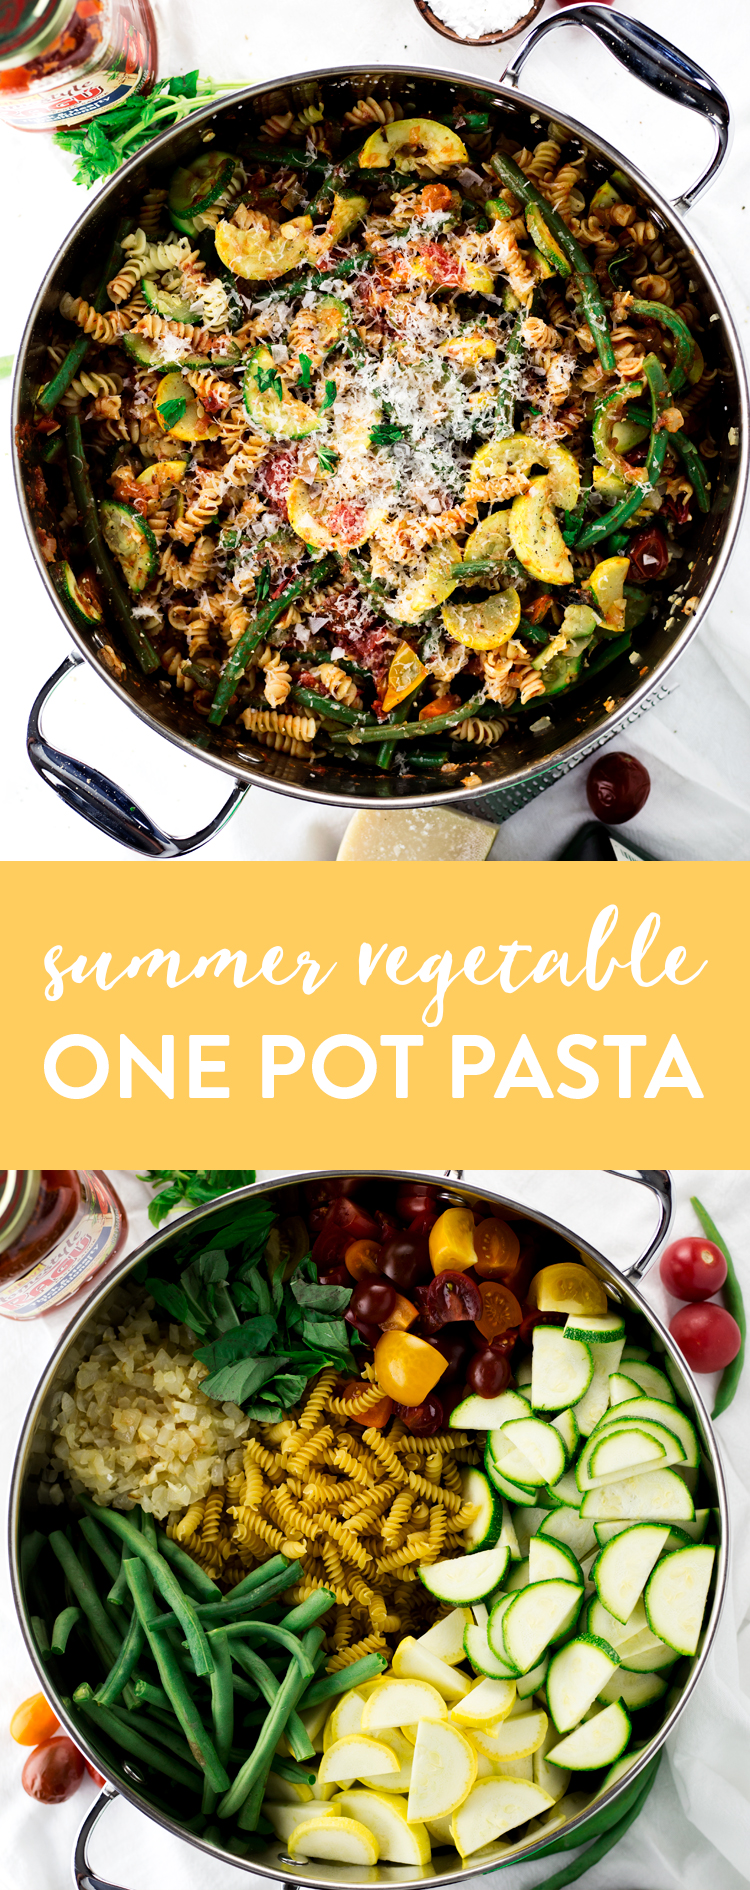 A perfect dish to get through a hot day, whip up this Summer Vegetable One Pot Pasta and be ready to eat in just 20 minutes! | asimplepantry.com